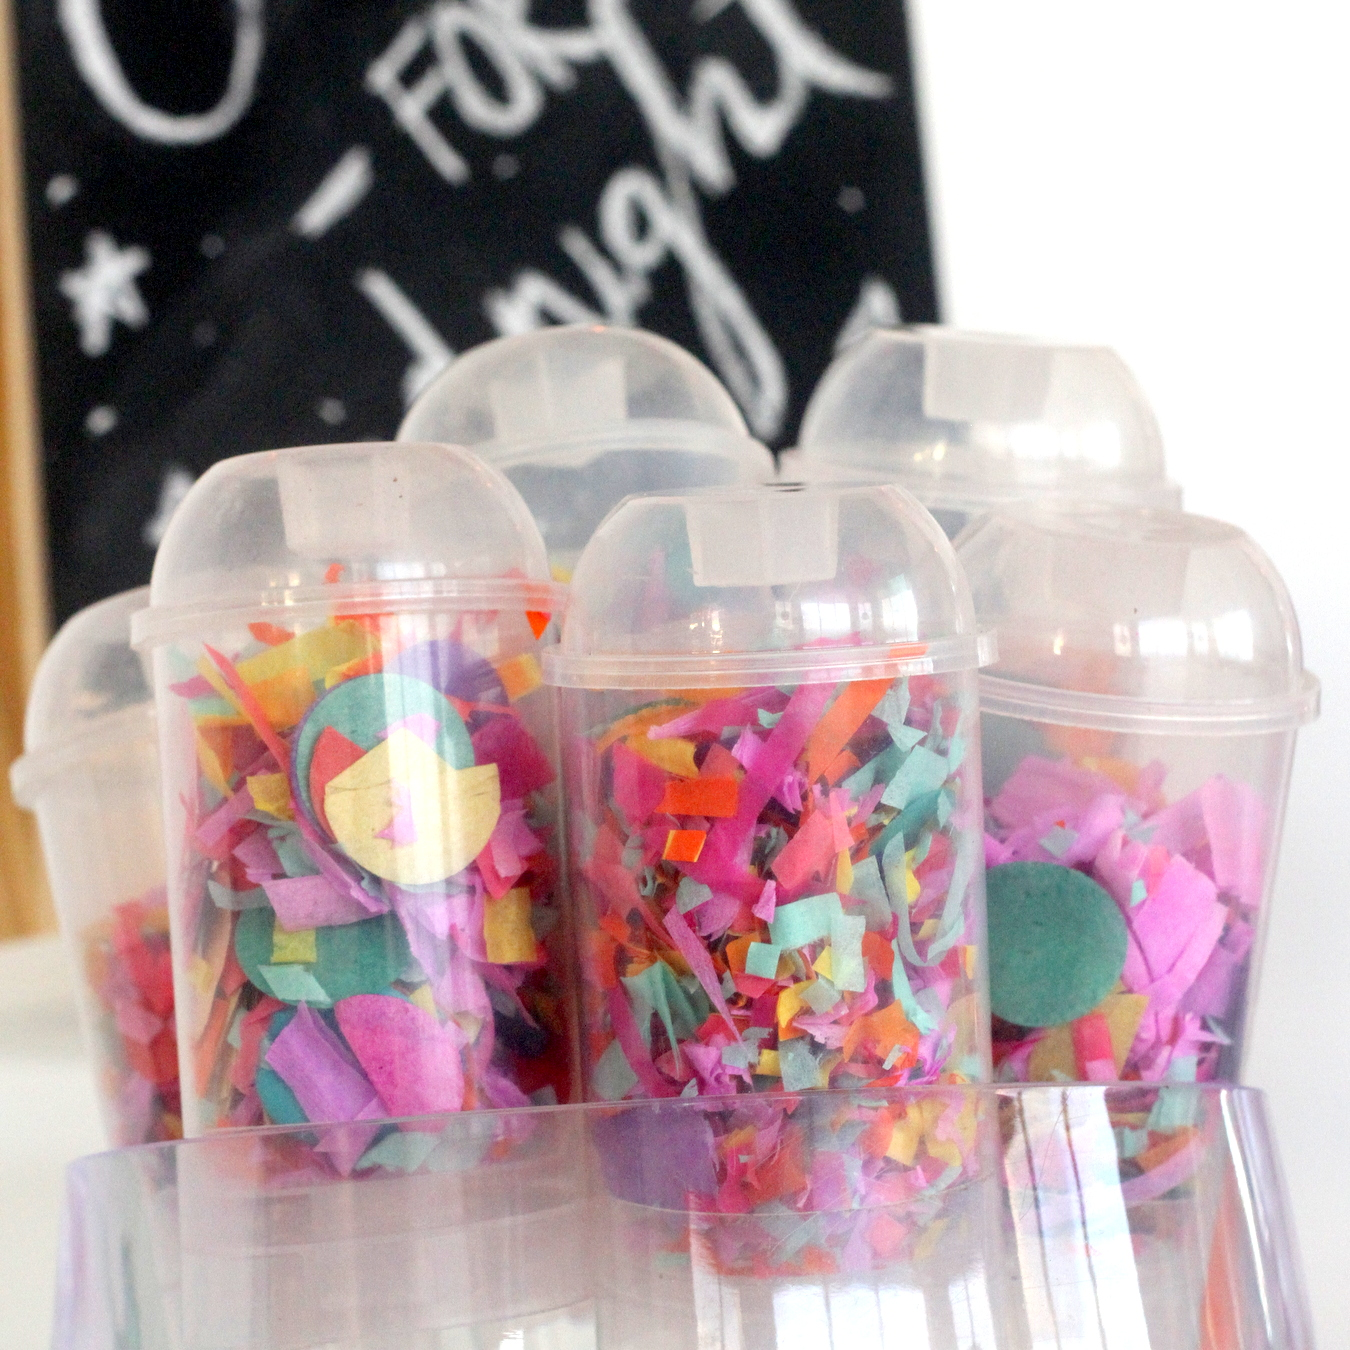 Easy New Year's Party ideas (and a confetti bar!)